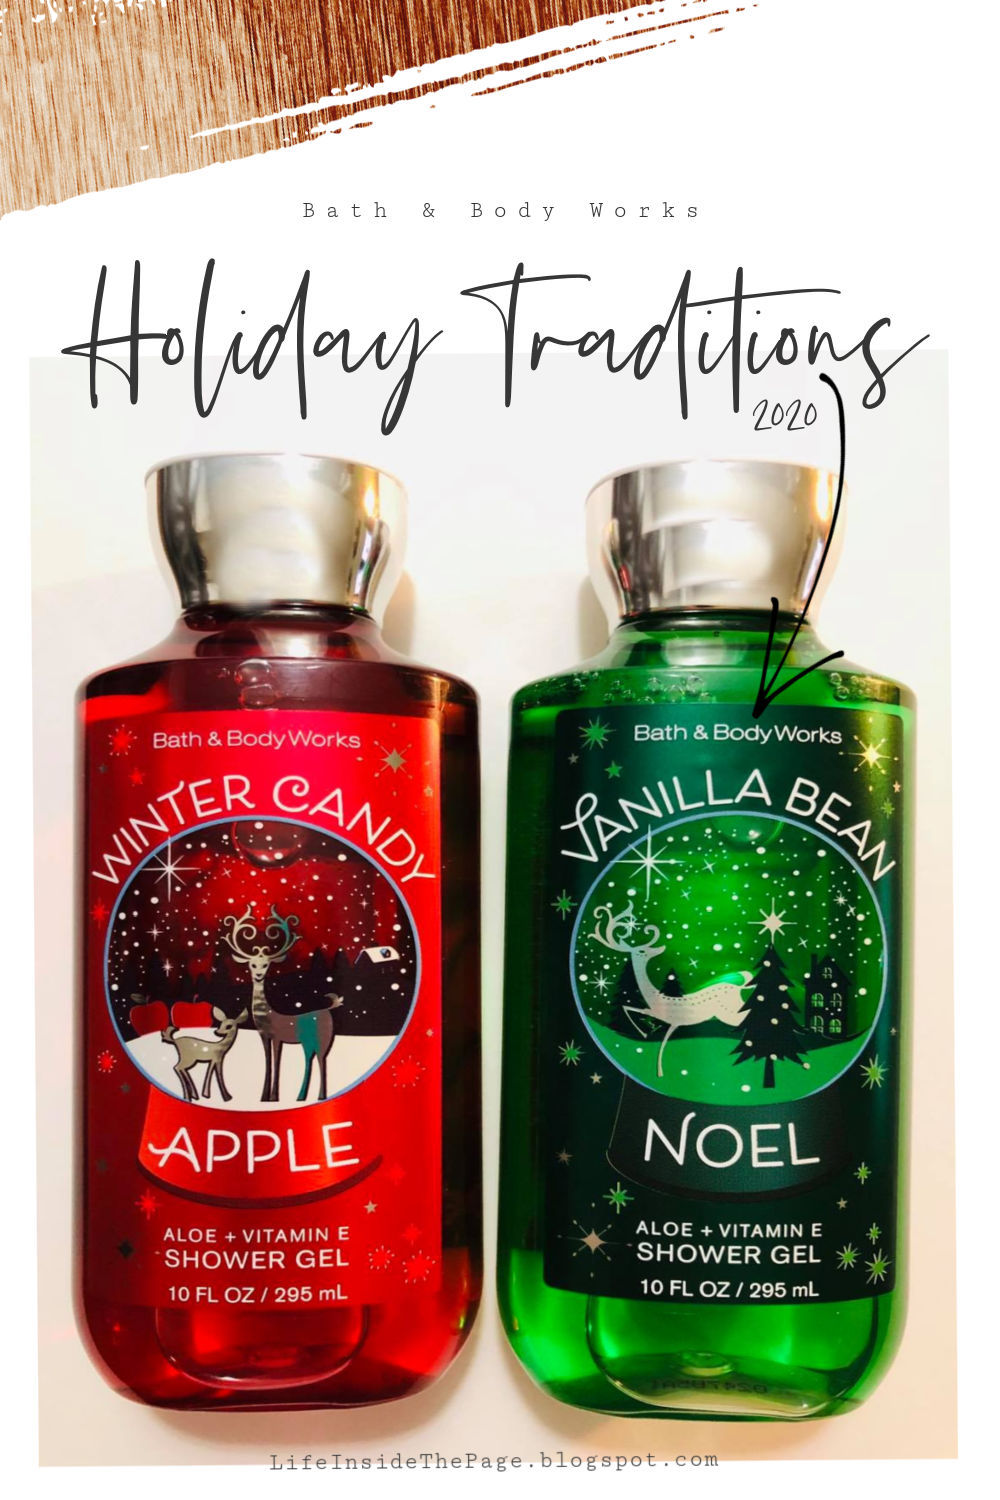 Bath And Body Works 2020 Christmas Life Inside the Page: Bath & Body Works | New Holiday Traditions